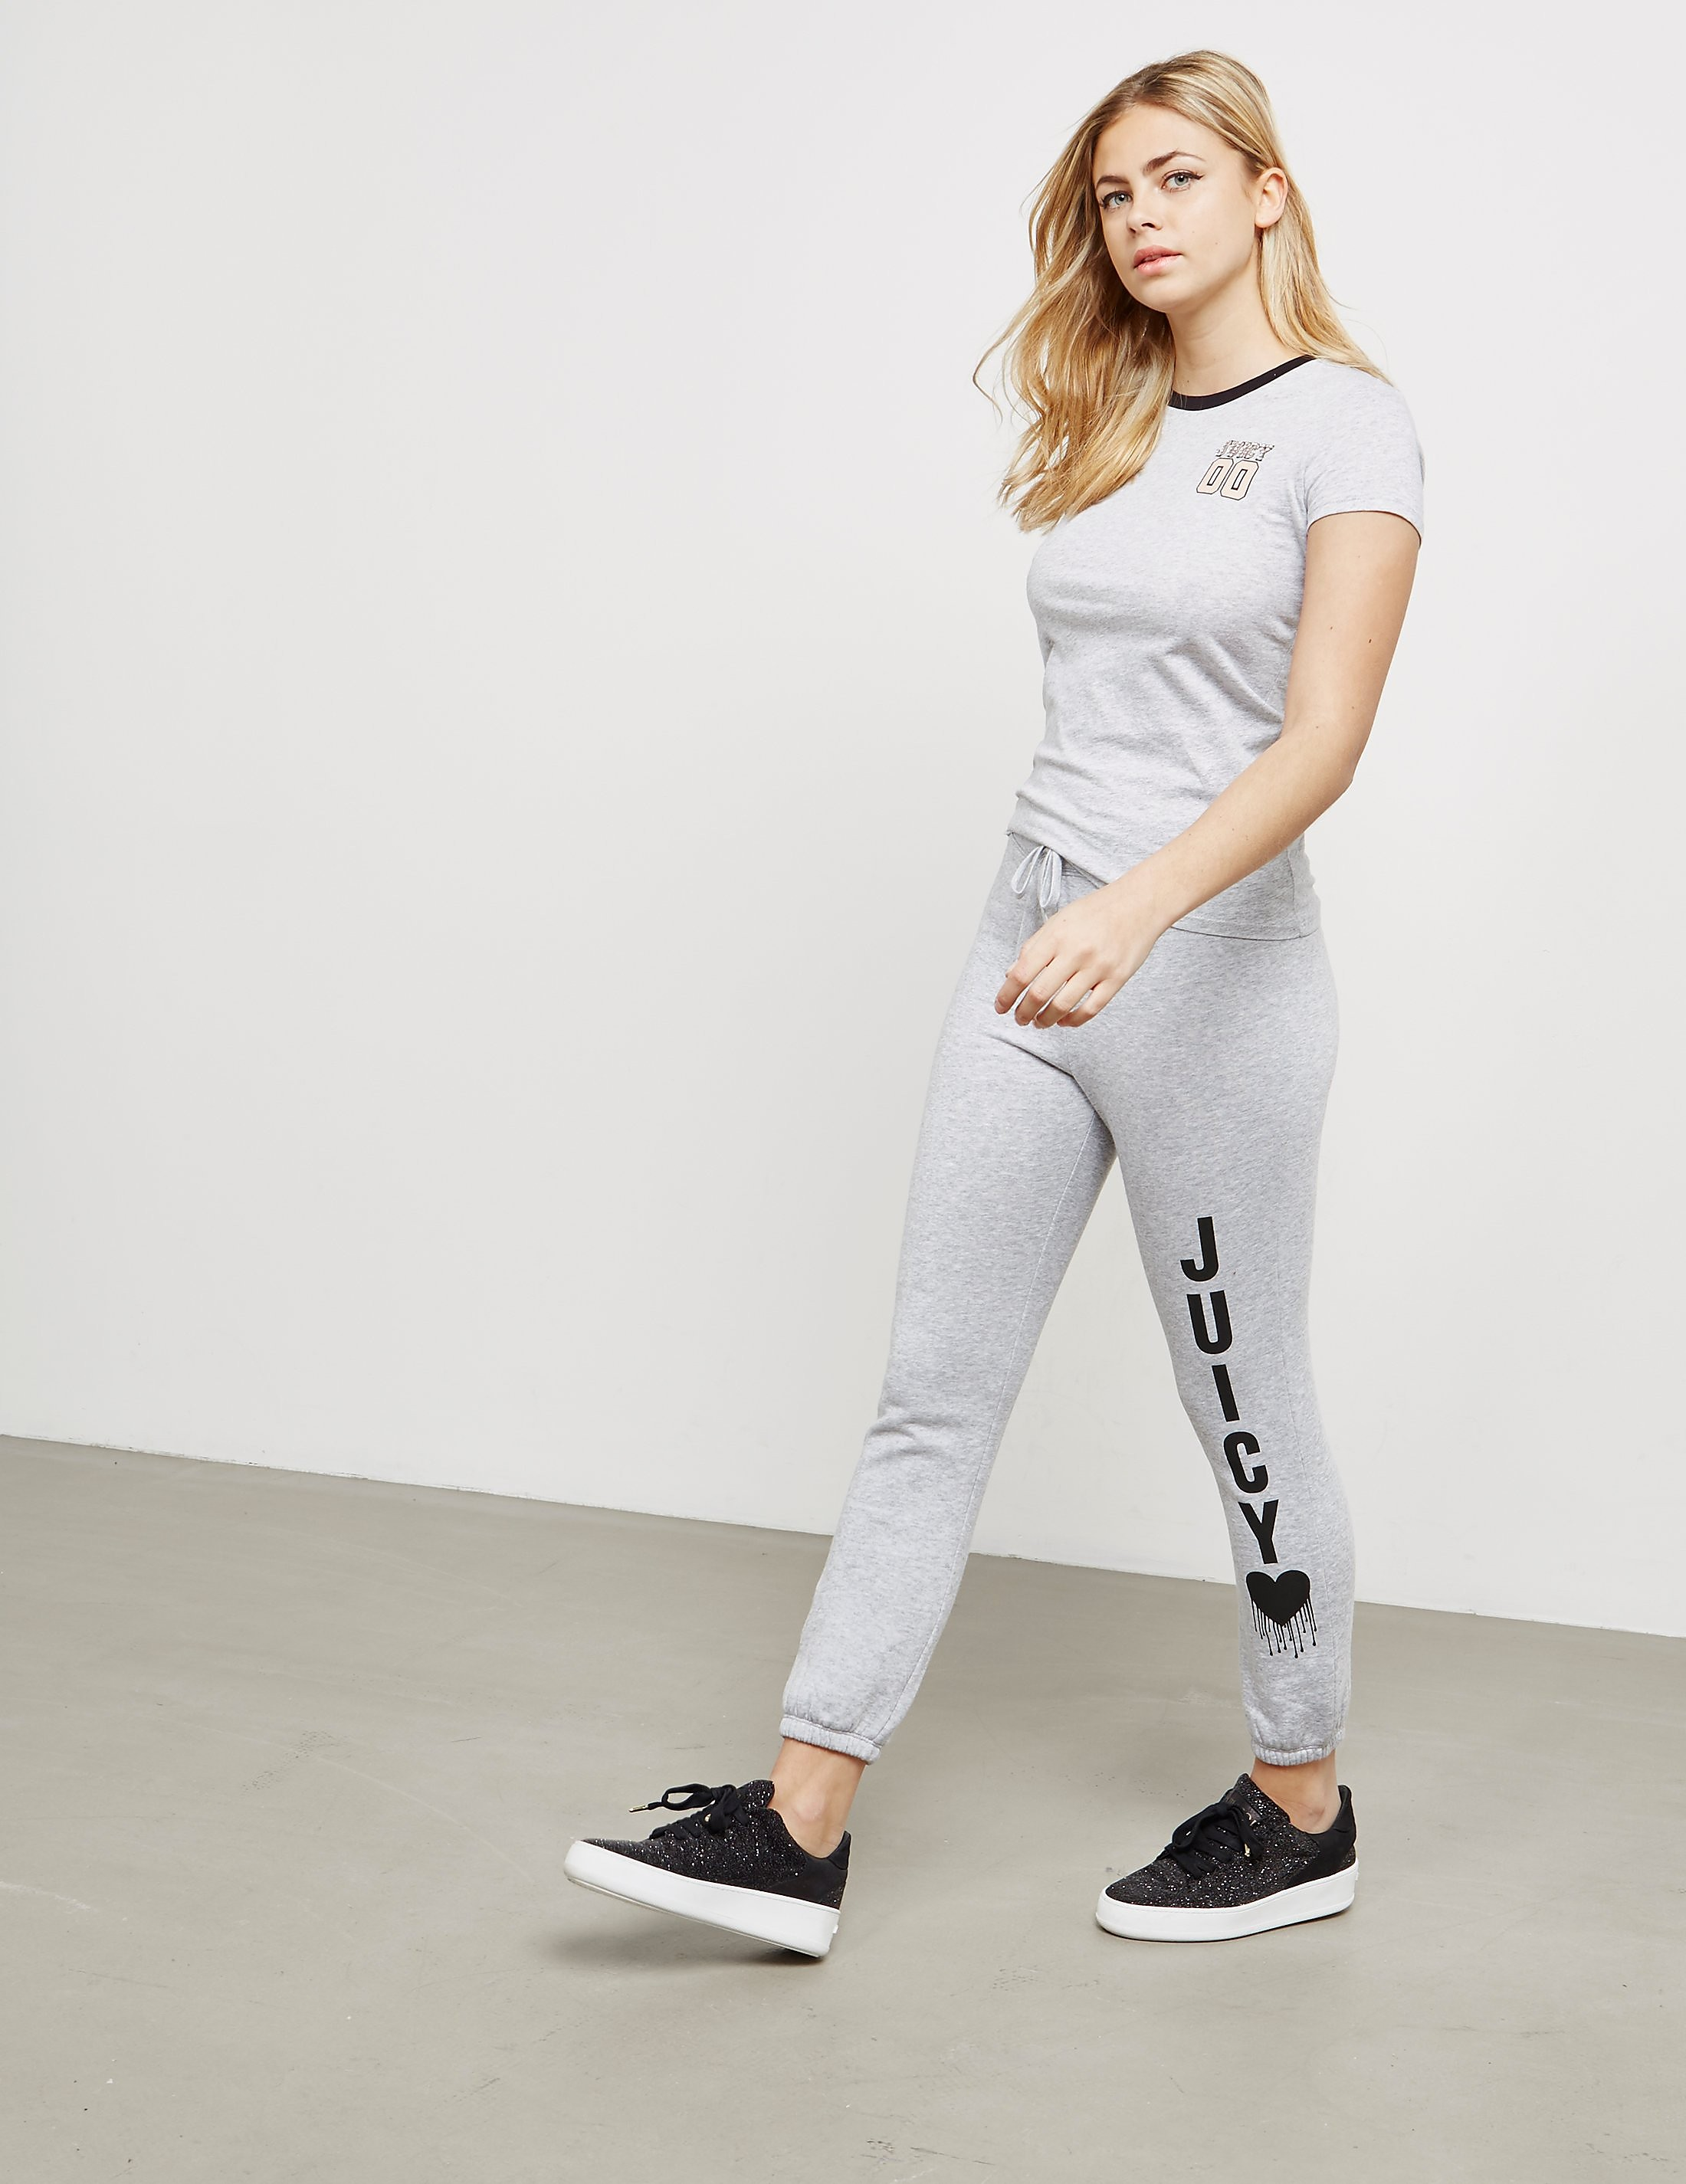 Juicy Couture Heart Cuffed Joggers